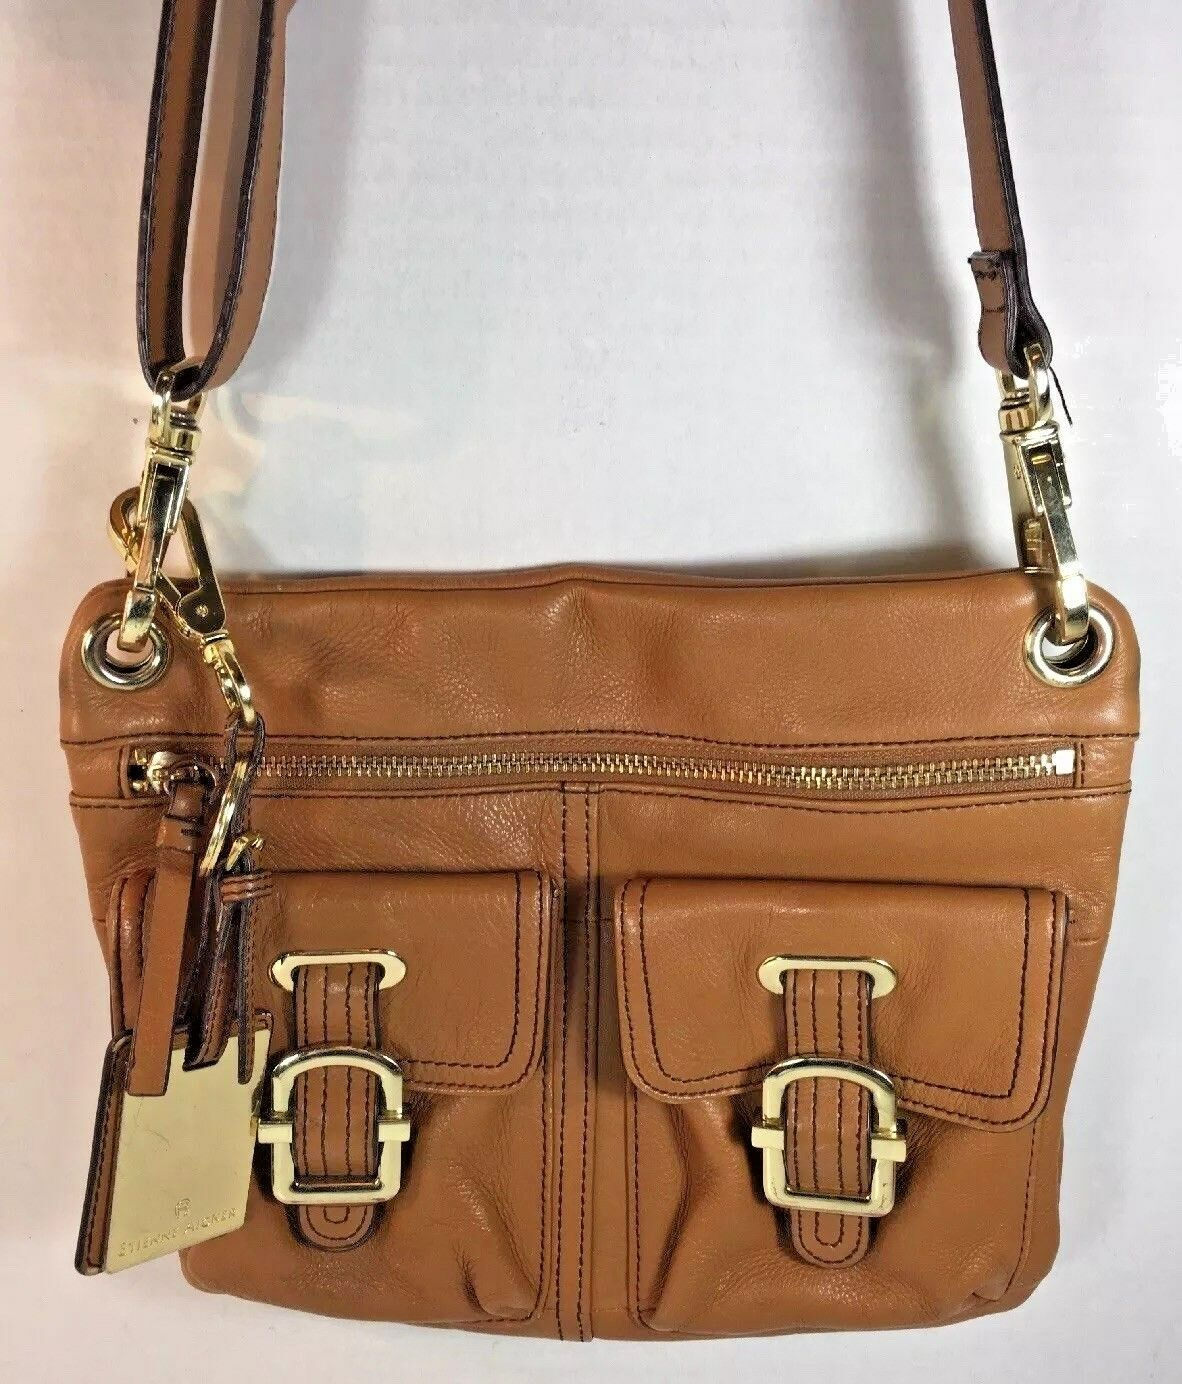 Primary image for ETIENNE AIGNER Brown Leather Slim Cross Body Shoulder Bag Gold Tone HW